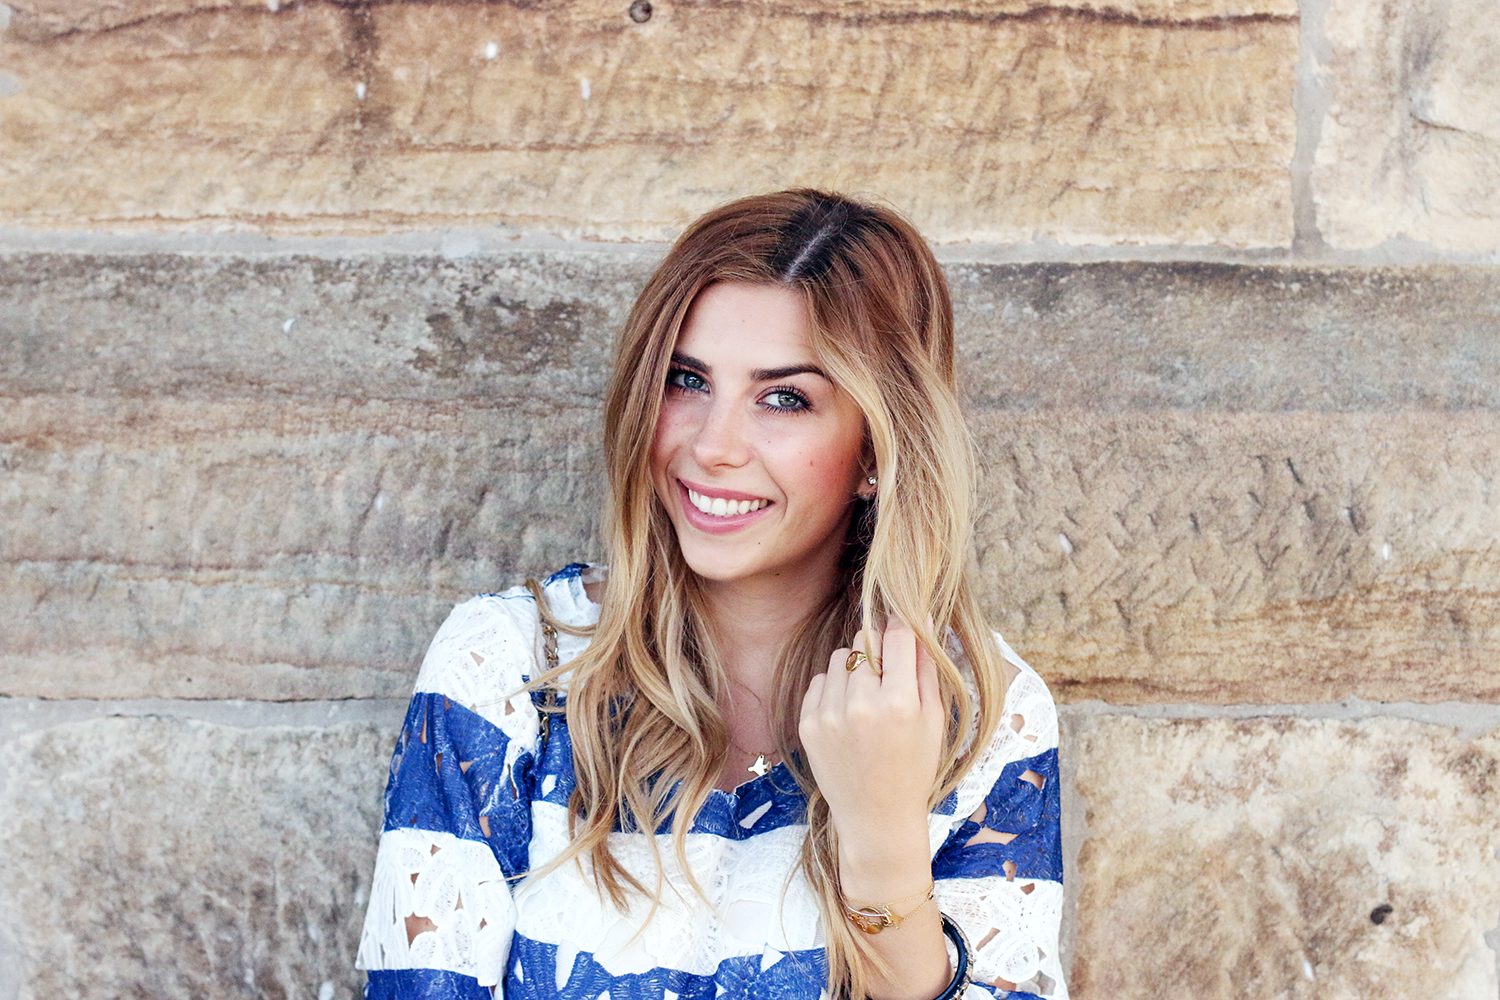 Ombre_hair_Luisa_blogger_beachy_hair